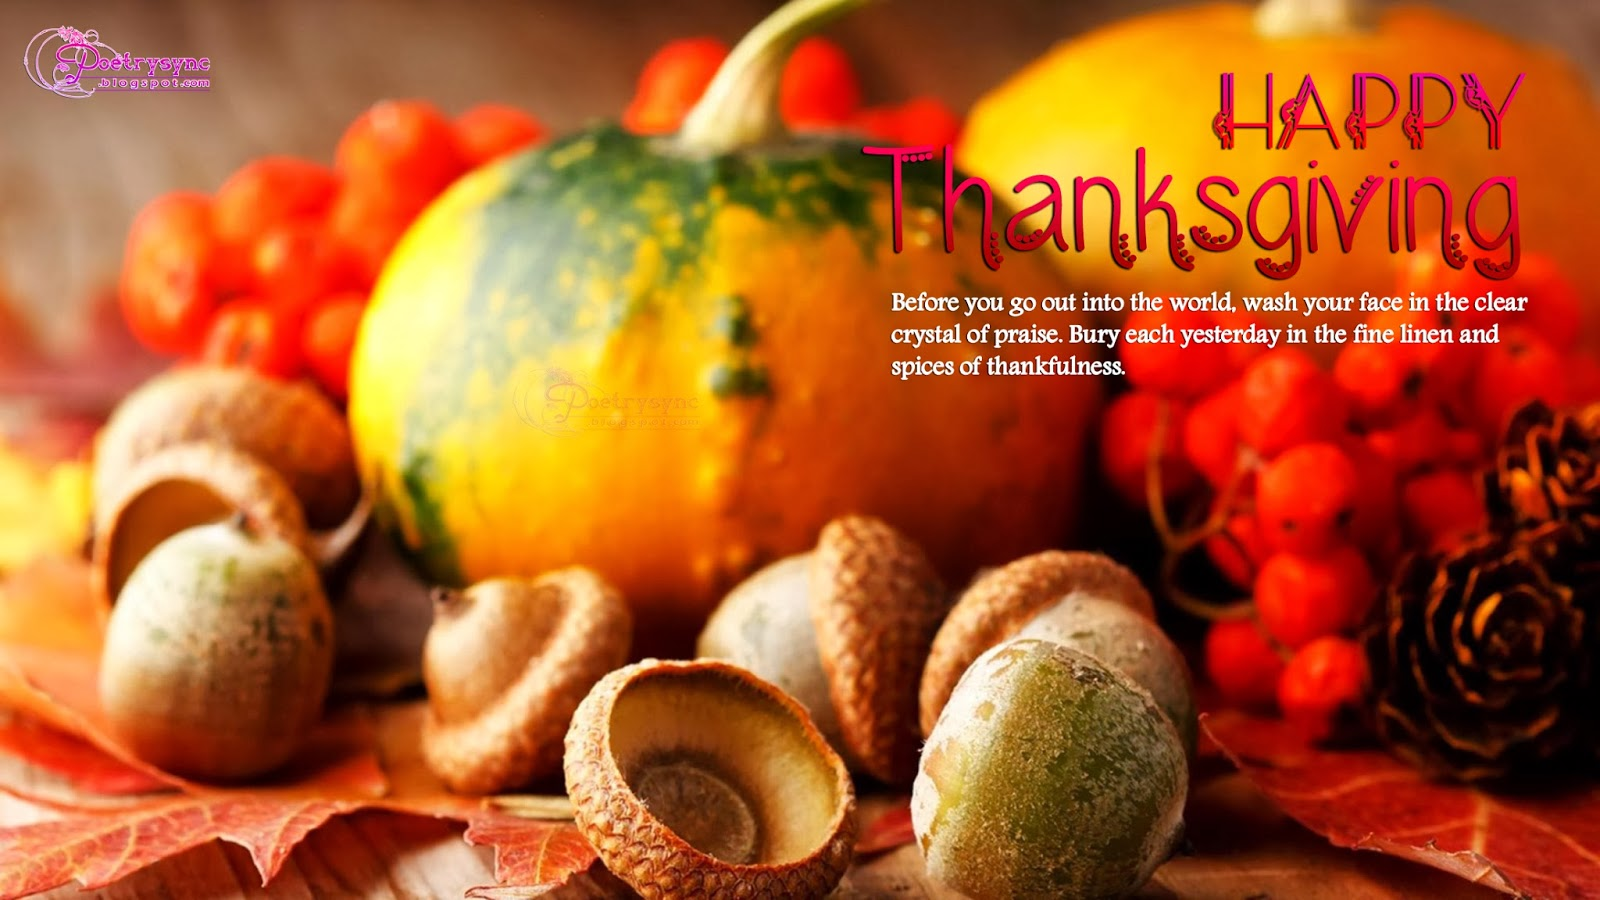 Happy Thanksgiving Wishes Card Wallpaper 2013 HD Widescreen Wallpapers 1600x900